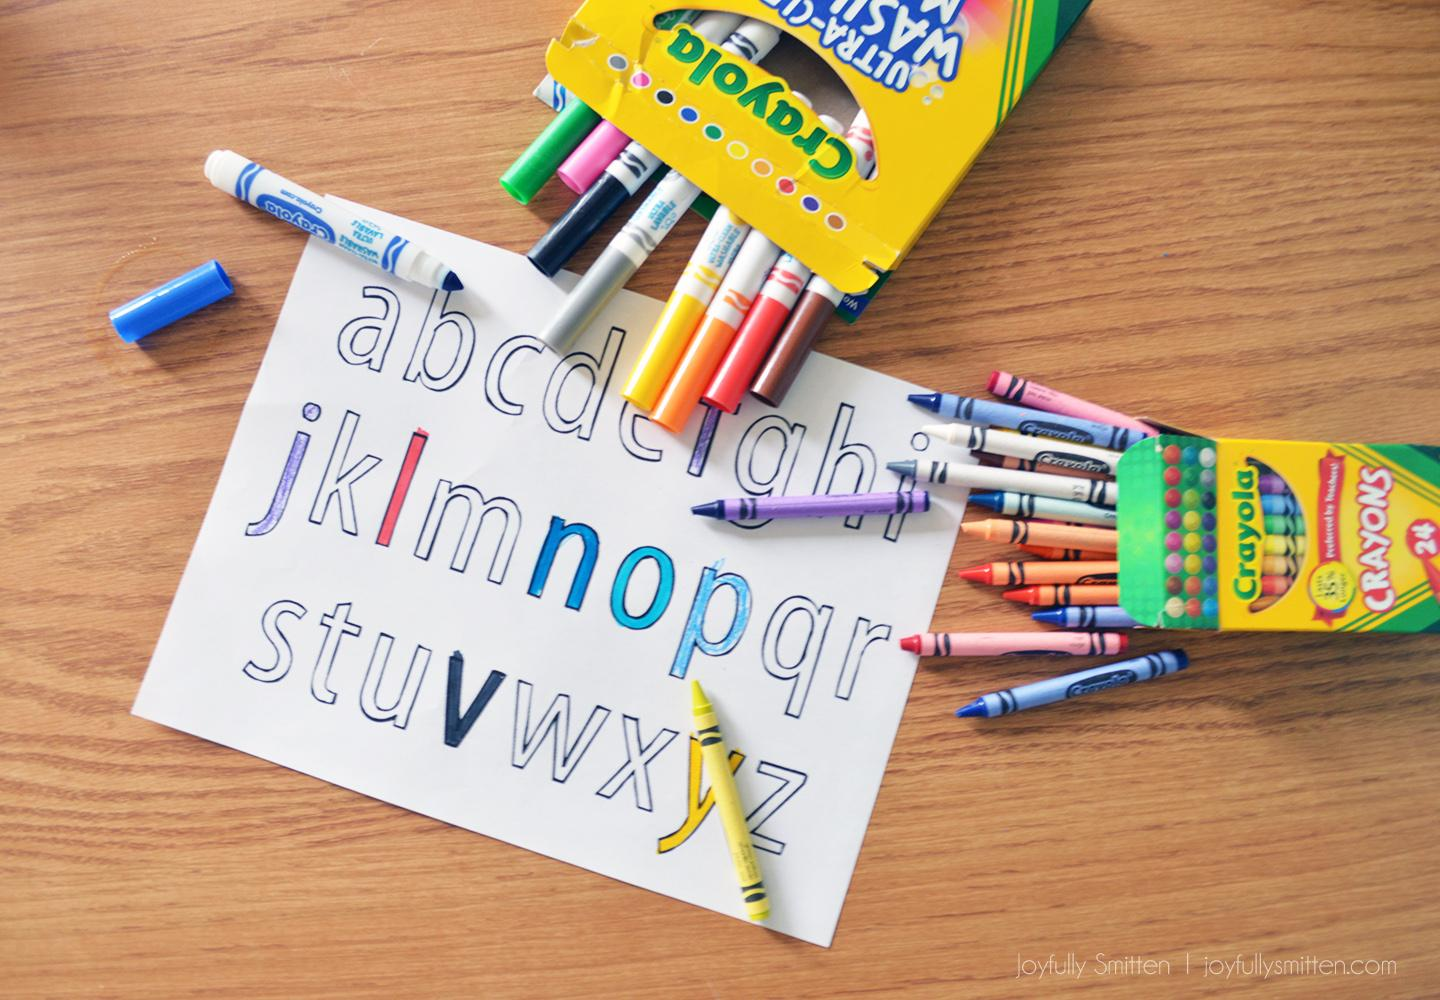 Crayola ClassicsMake Learning and Back to School even more fun with the fun new products that Crayola offers that are perfect for the school year!